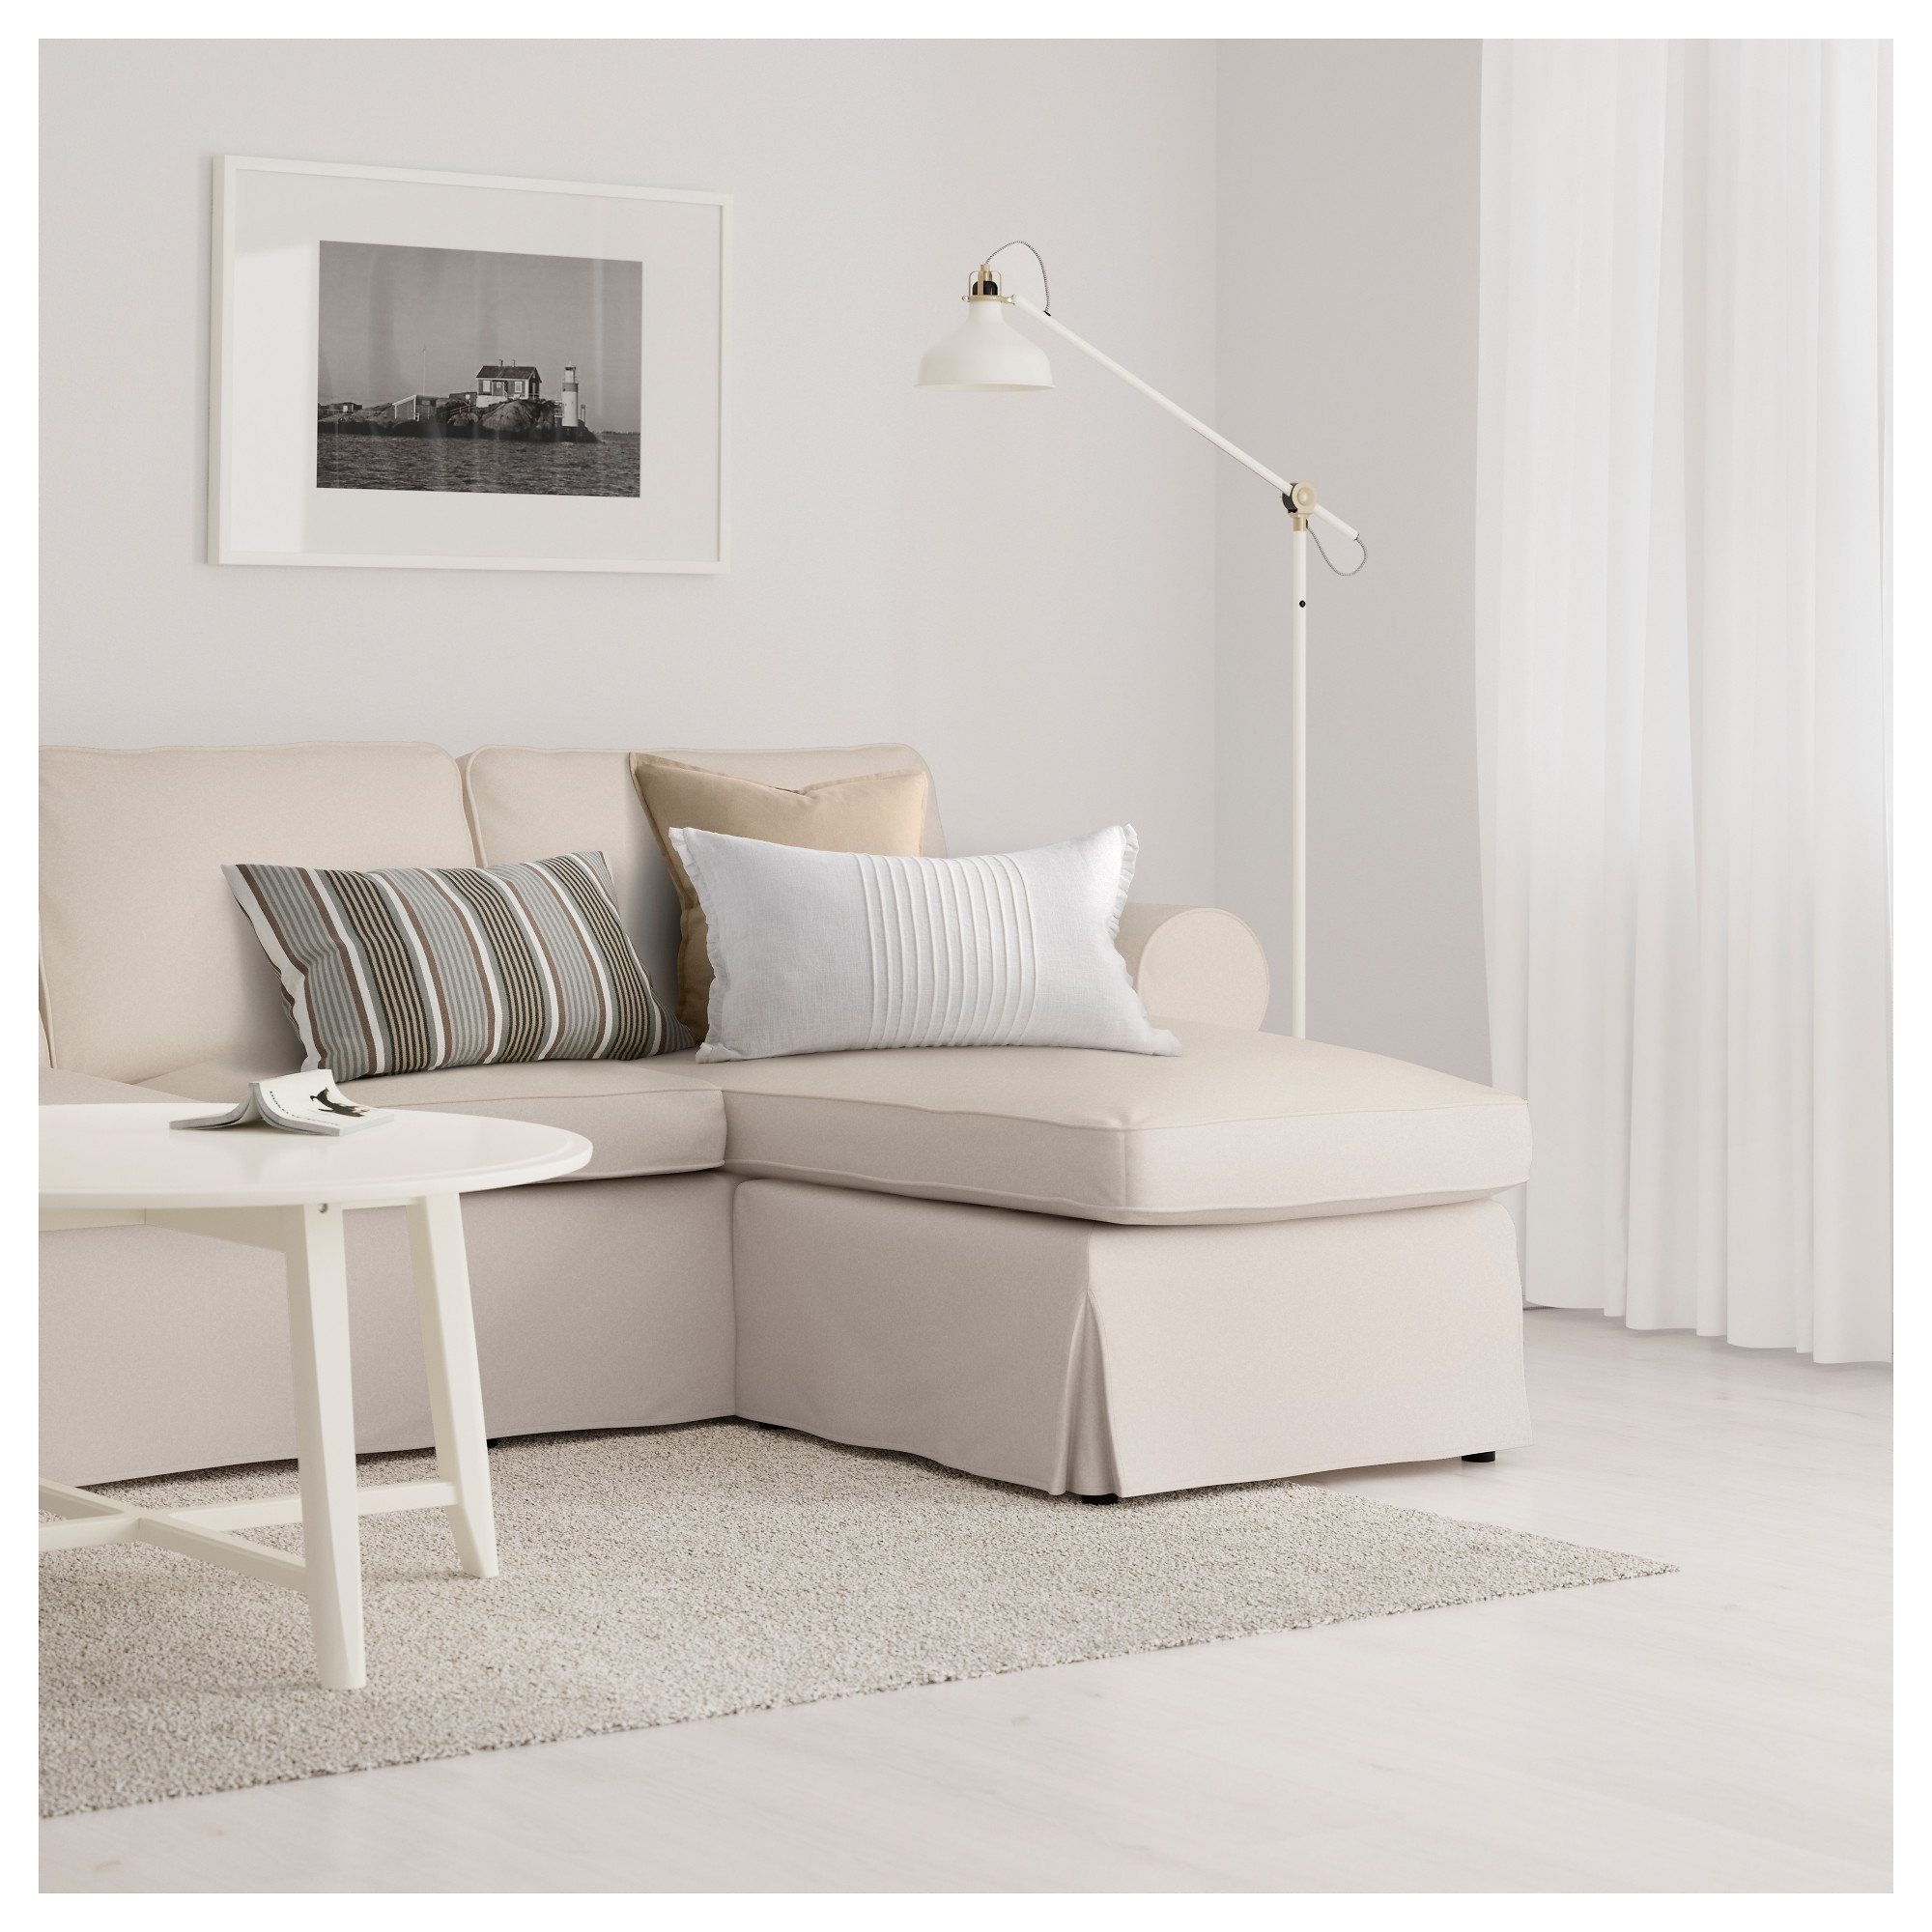 Widely Used Ektorp Sofa – With Chaise/nordvalla Light Blue – Ikea Pertaining To Ikea Ektorp Chaises (View 11 of 15)